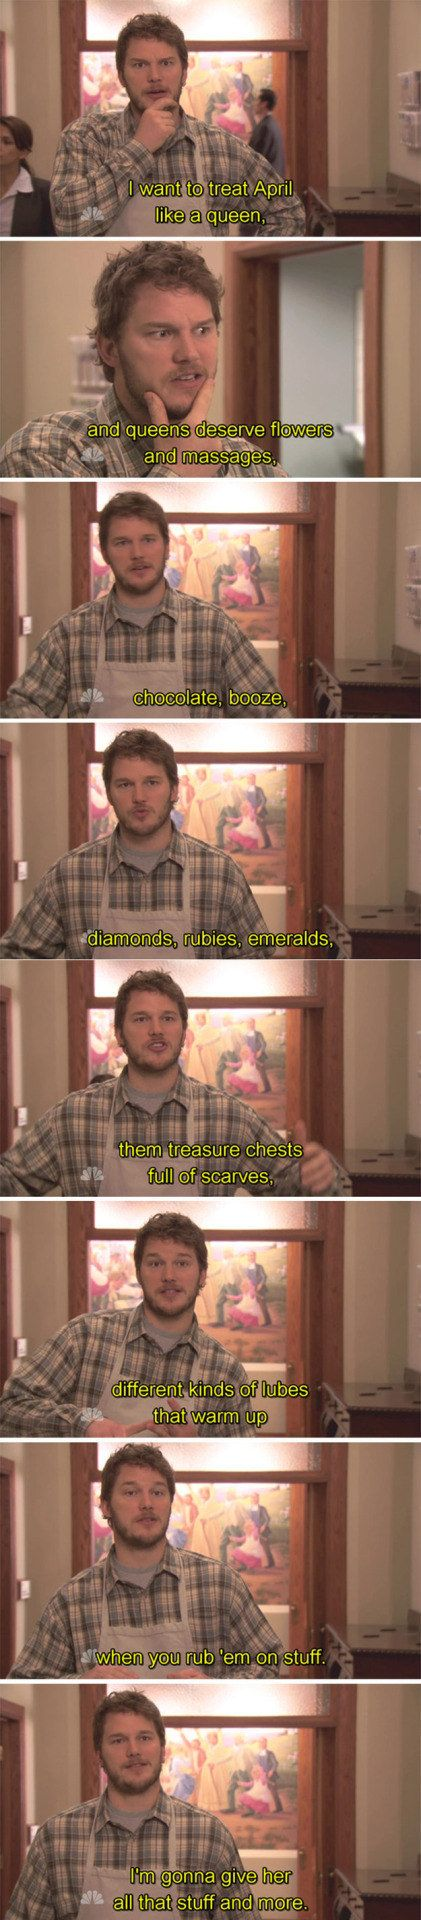 """When they started dating, and Andy wanted to treat April like a queen: 